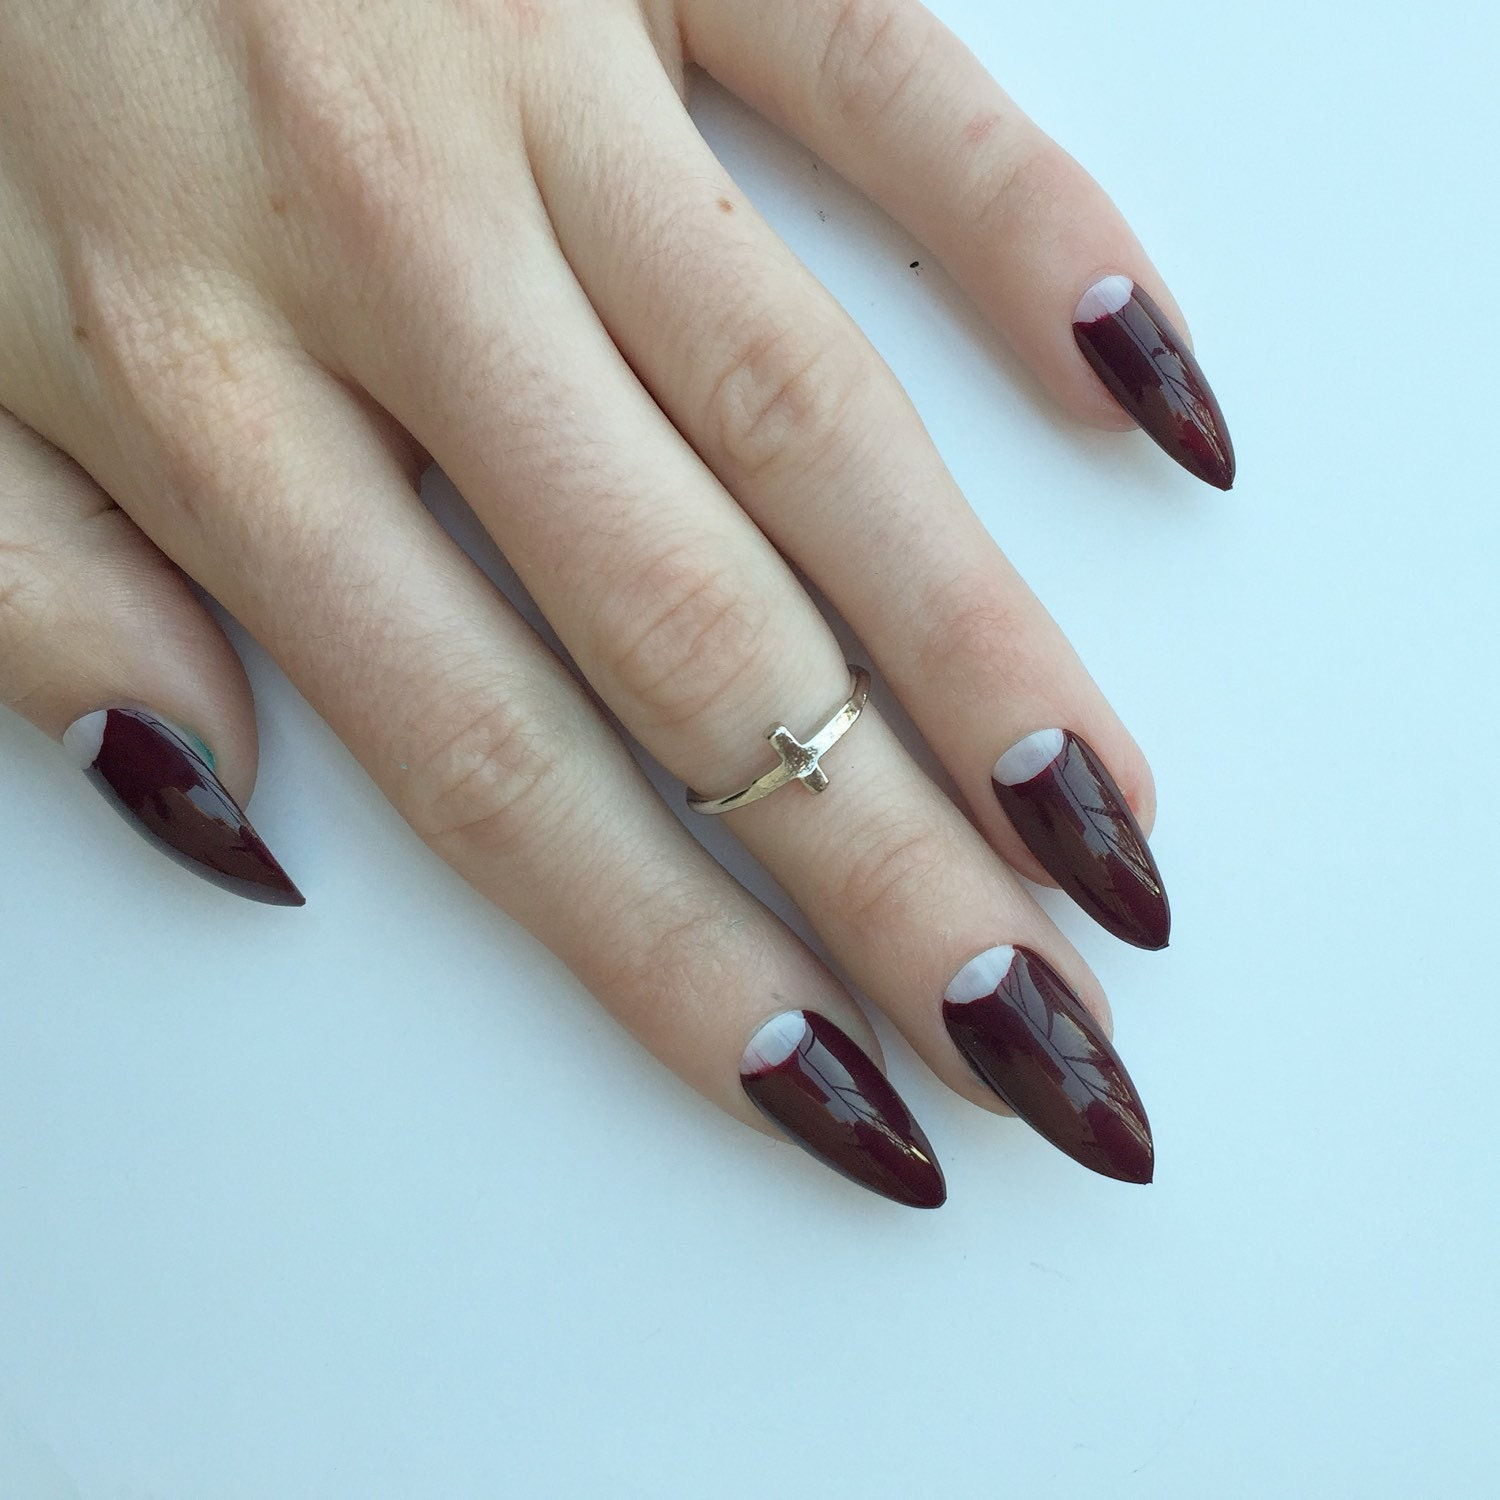 Deep Red Half Moon Nails 24 negative space half moon press on